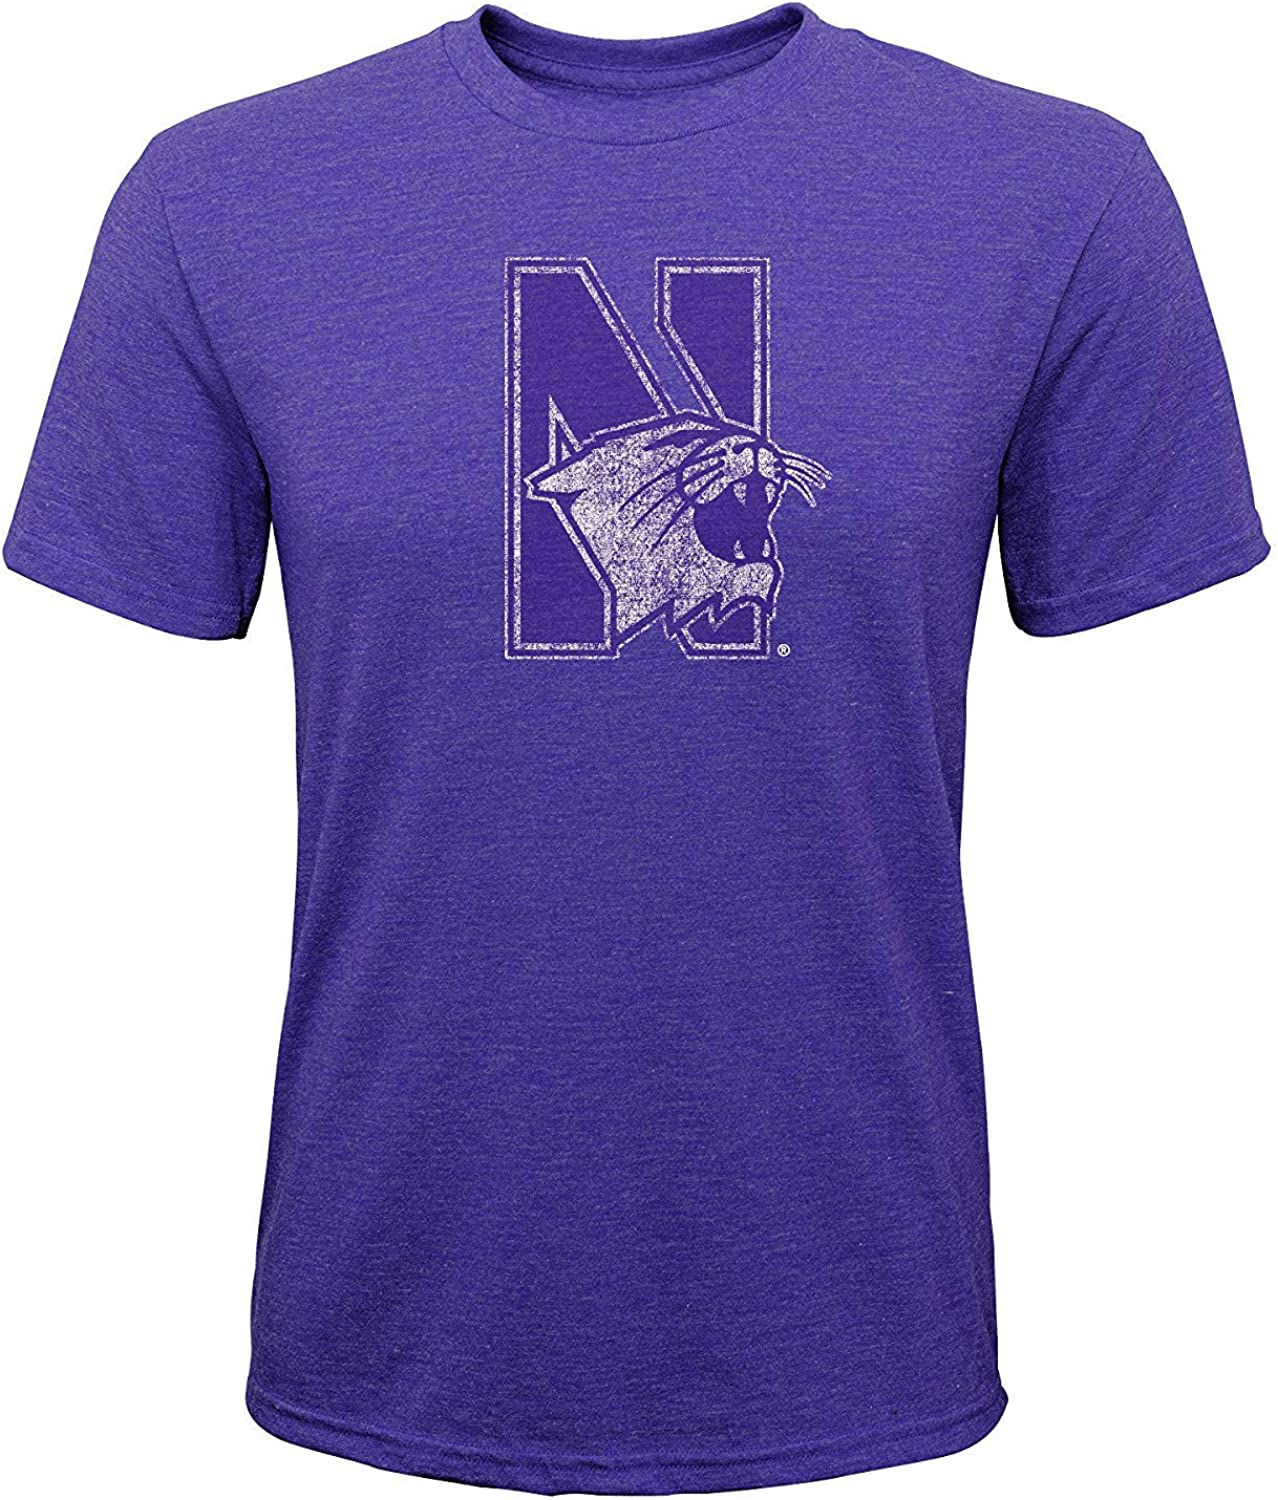 Adidas Northwestern Wildcats Youth Distressed Logo Tri Blend Shirt